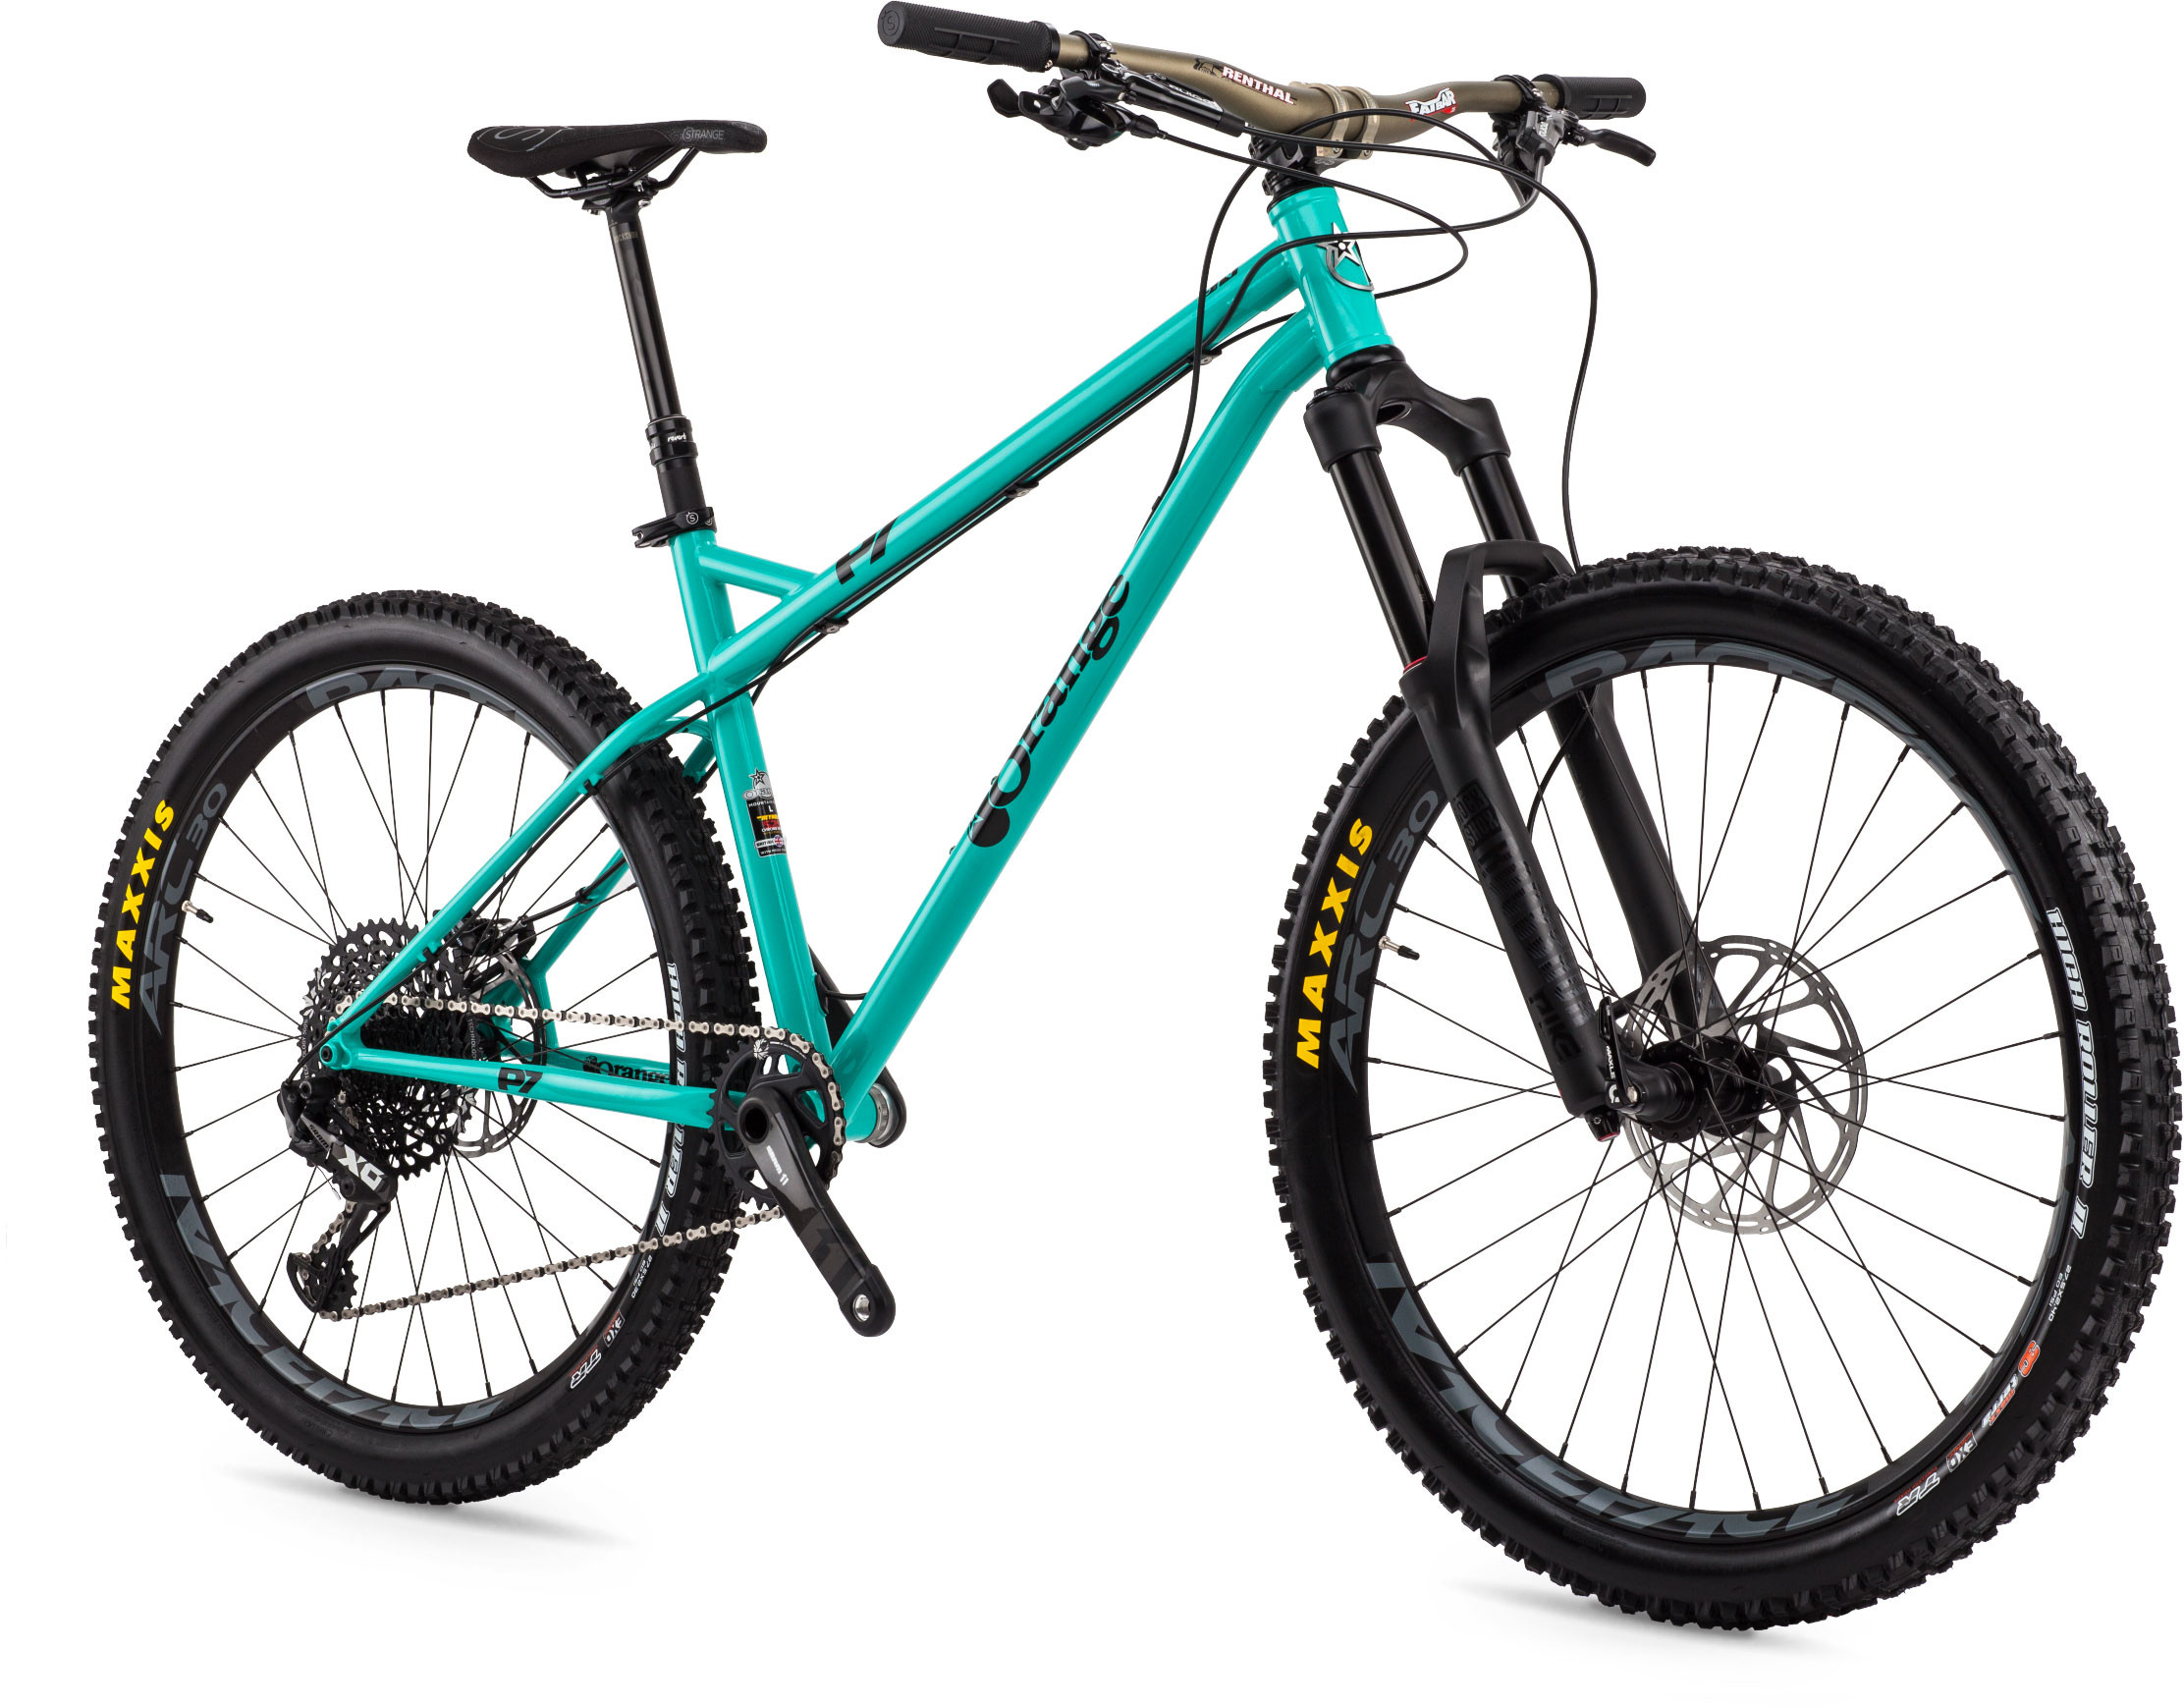 2018 mountain bikes bicycling and the best bike ideas. Black Bedroom Furniture Sets. Home Design Ideas